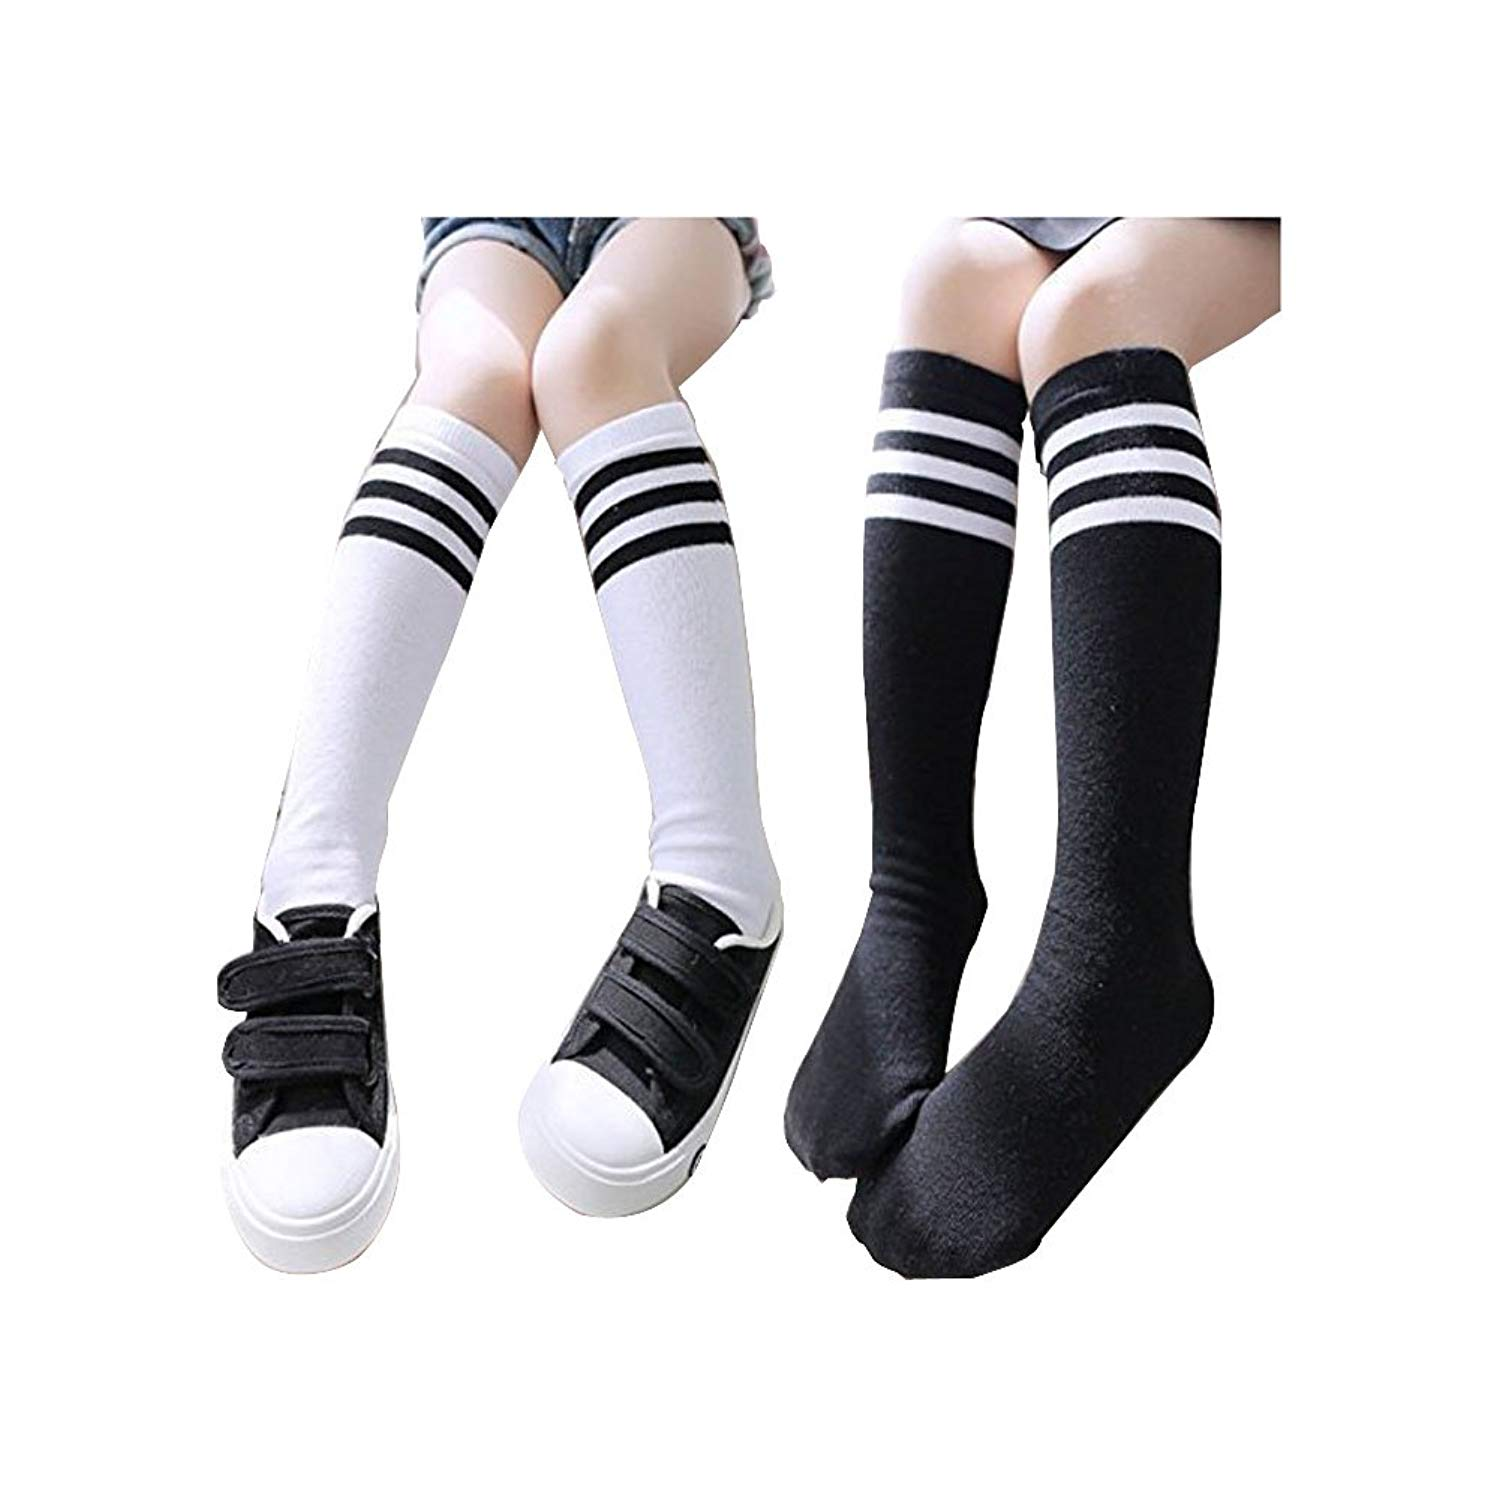 21af73a2086 Get Quotations · Girls Socks Toddler Knee High Stockings 2PC Running Socks  For 3-10 Years